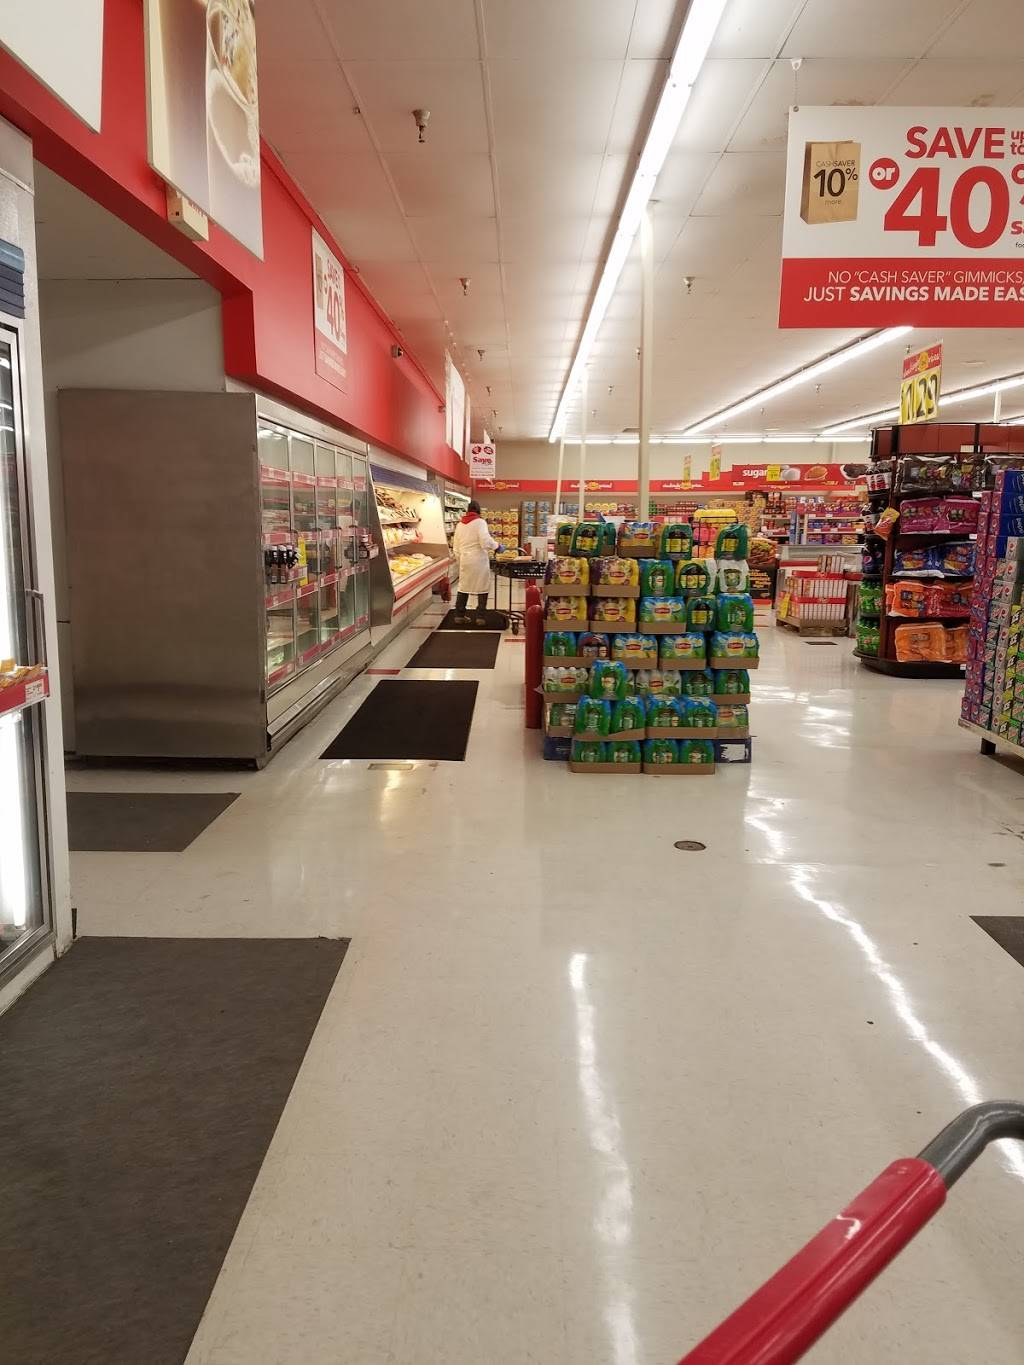 Save A Lot - supermarket  | Photo 5 of 10 | Address: 1804 Dixie Hwy, Louisville, KY 40210, USA | Phone: (502) 774-1464